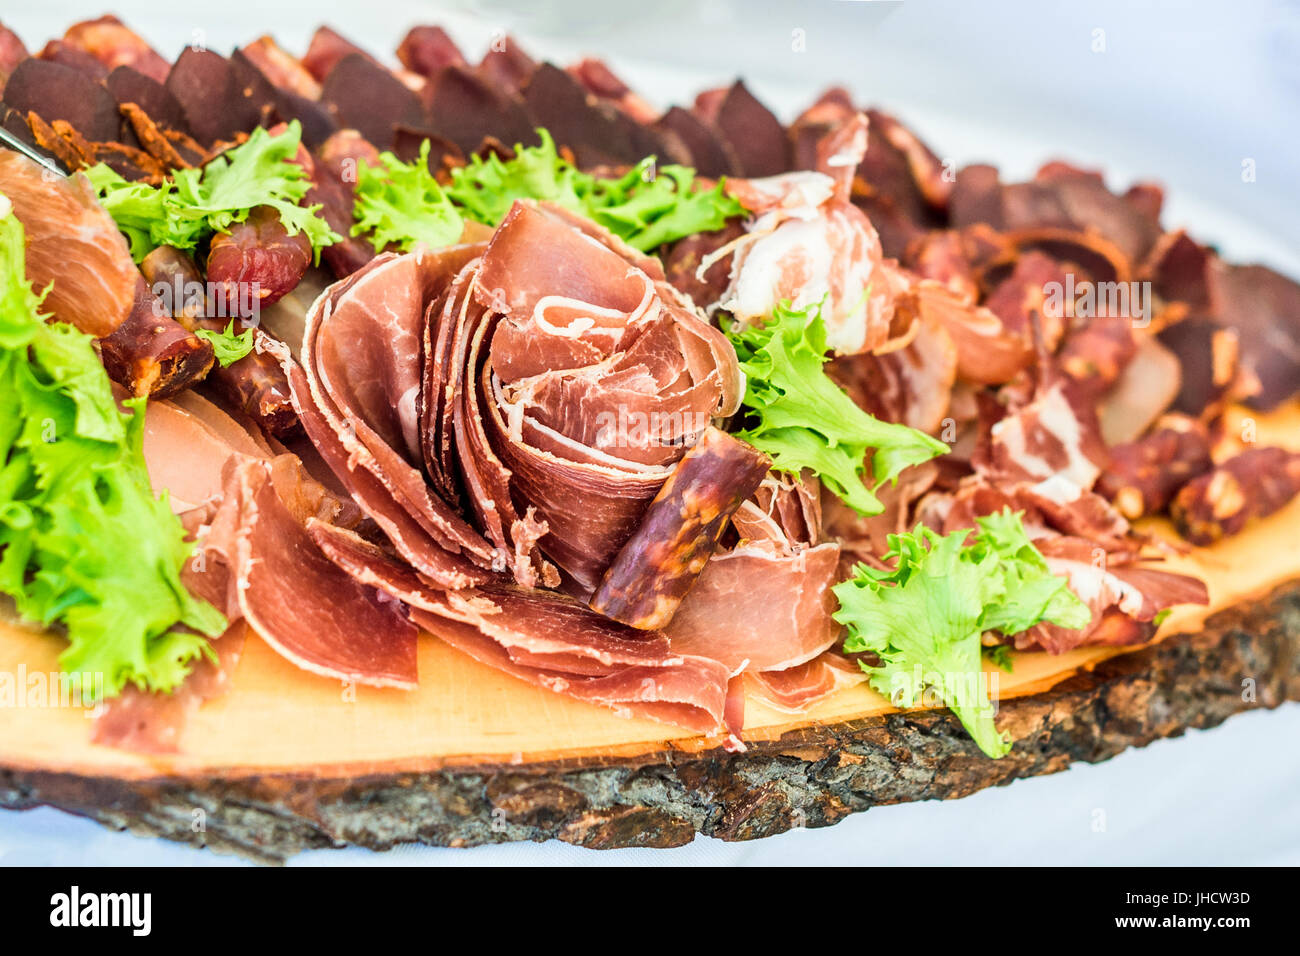 Sausage slices on board - Stock Image